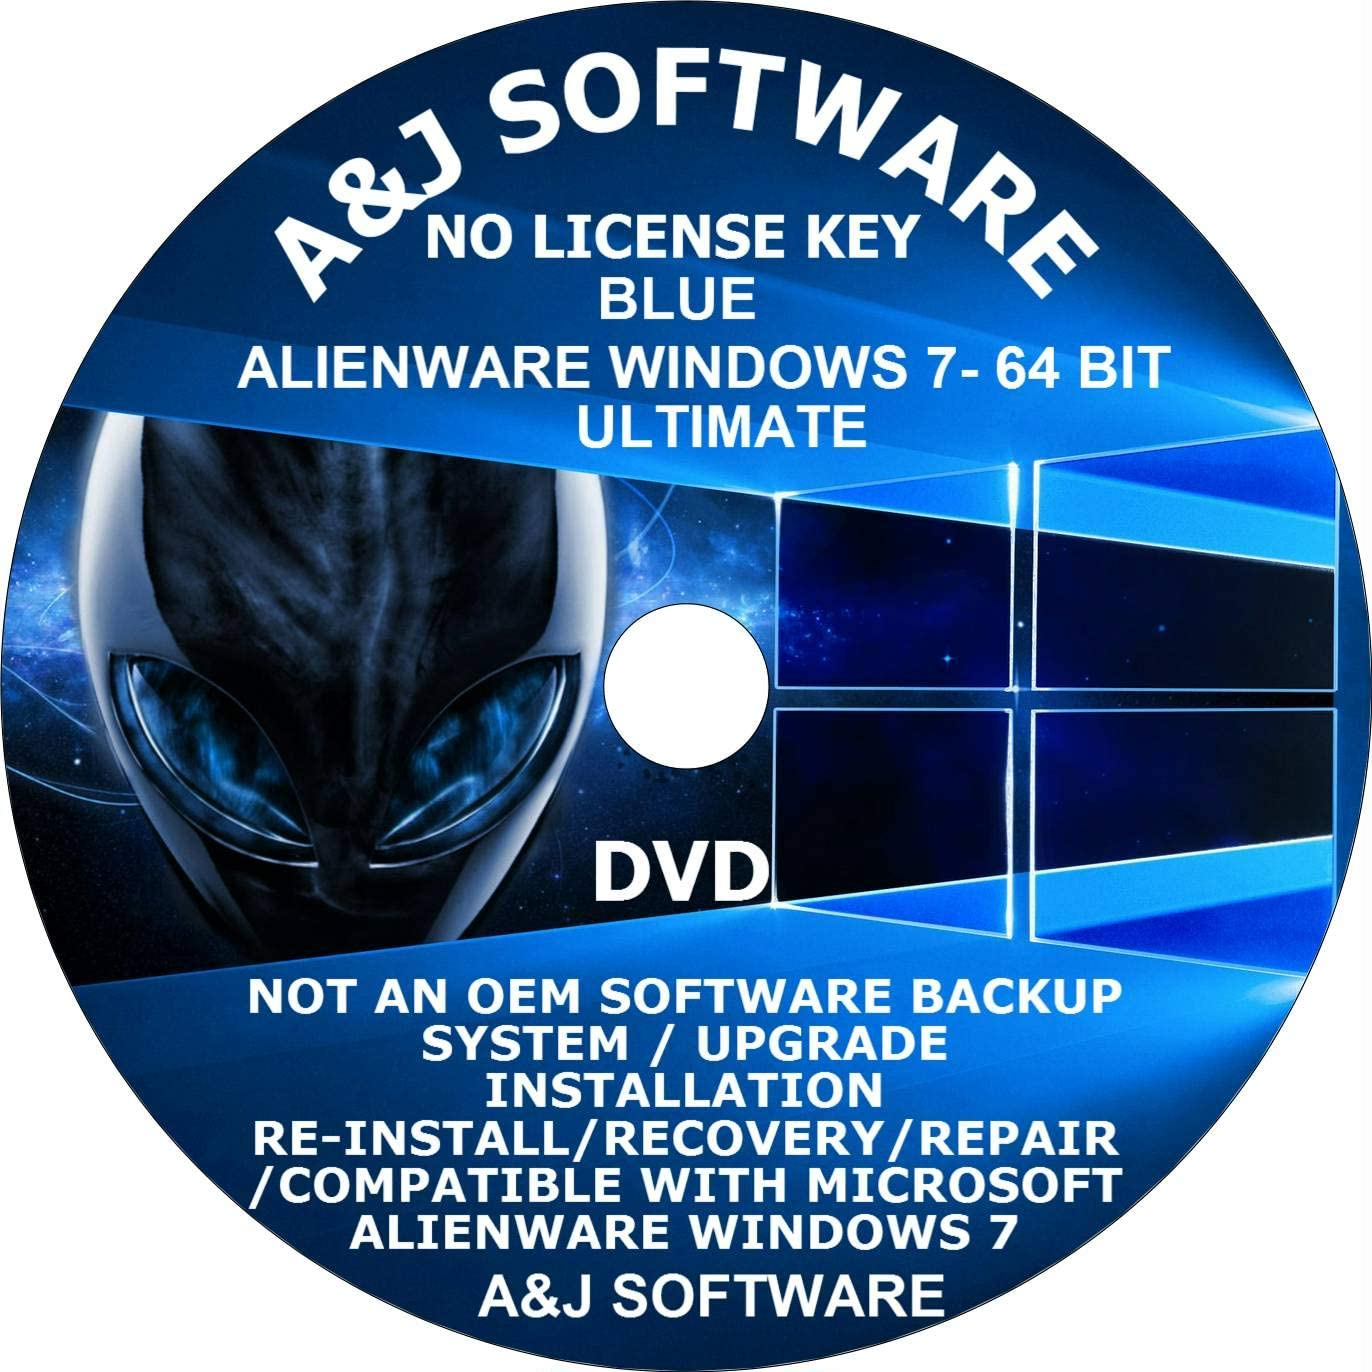 Windows 7 A. Ultimate Arlington Mall Blue Edition DVD LATEST 64-BIT VERSION ISO Directly managed store